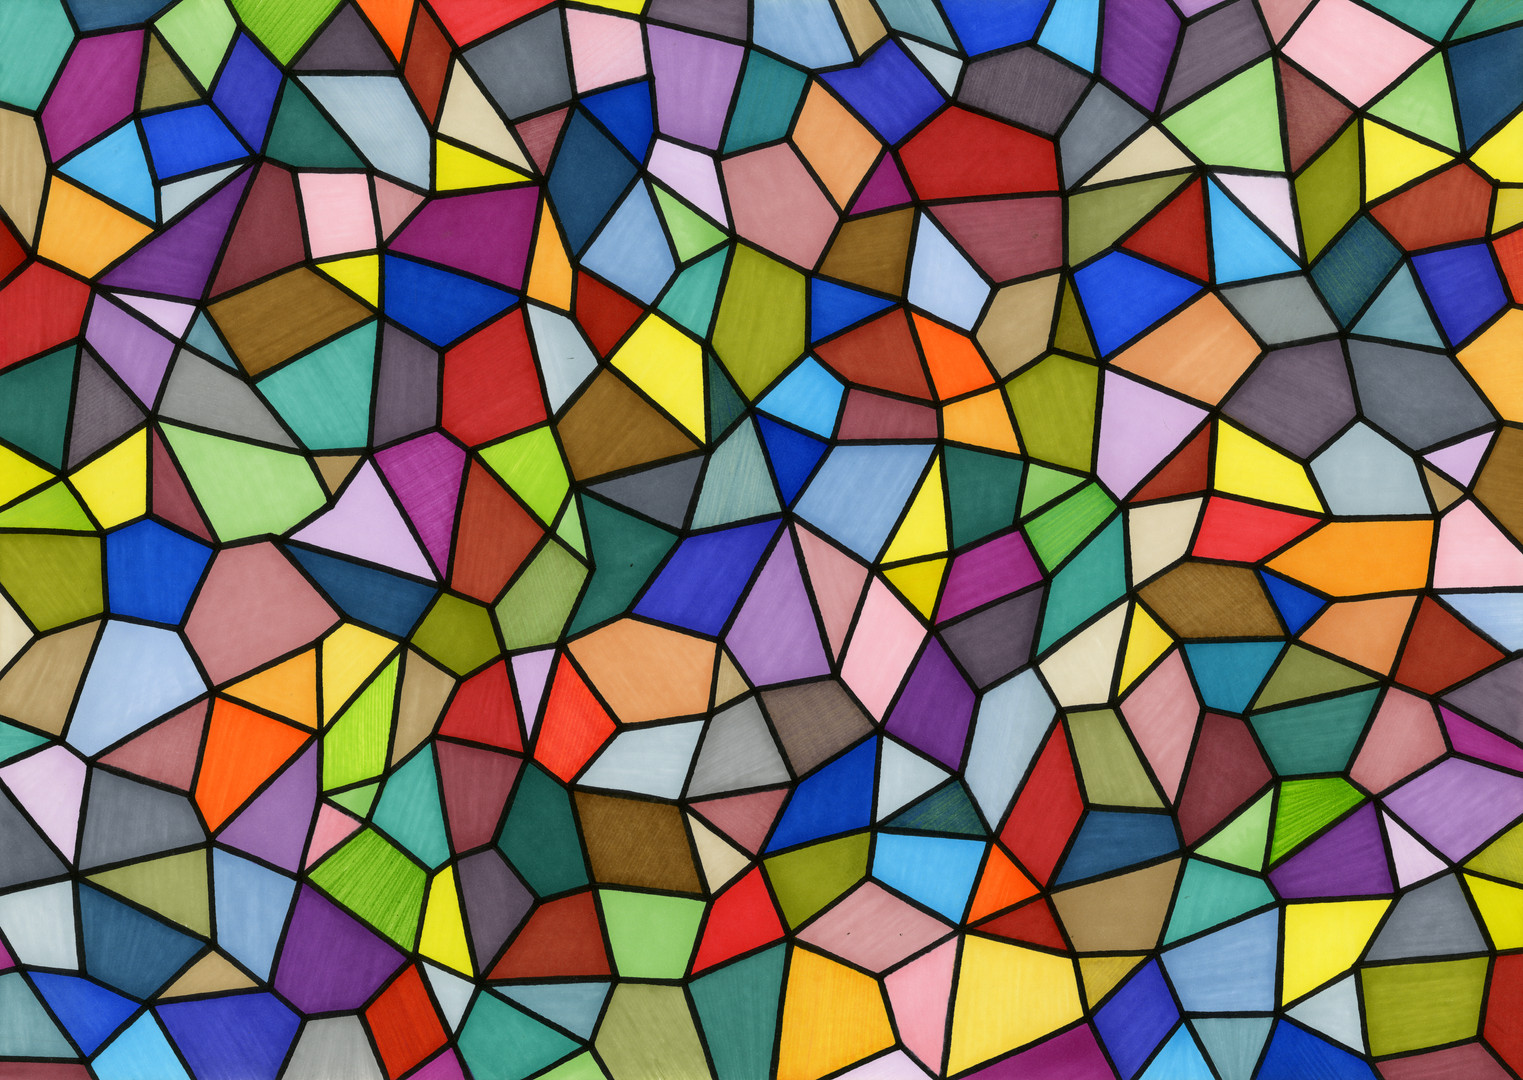 Stained Glass #I illustration